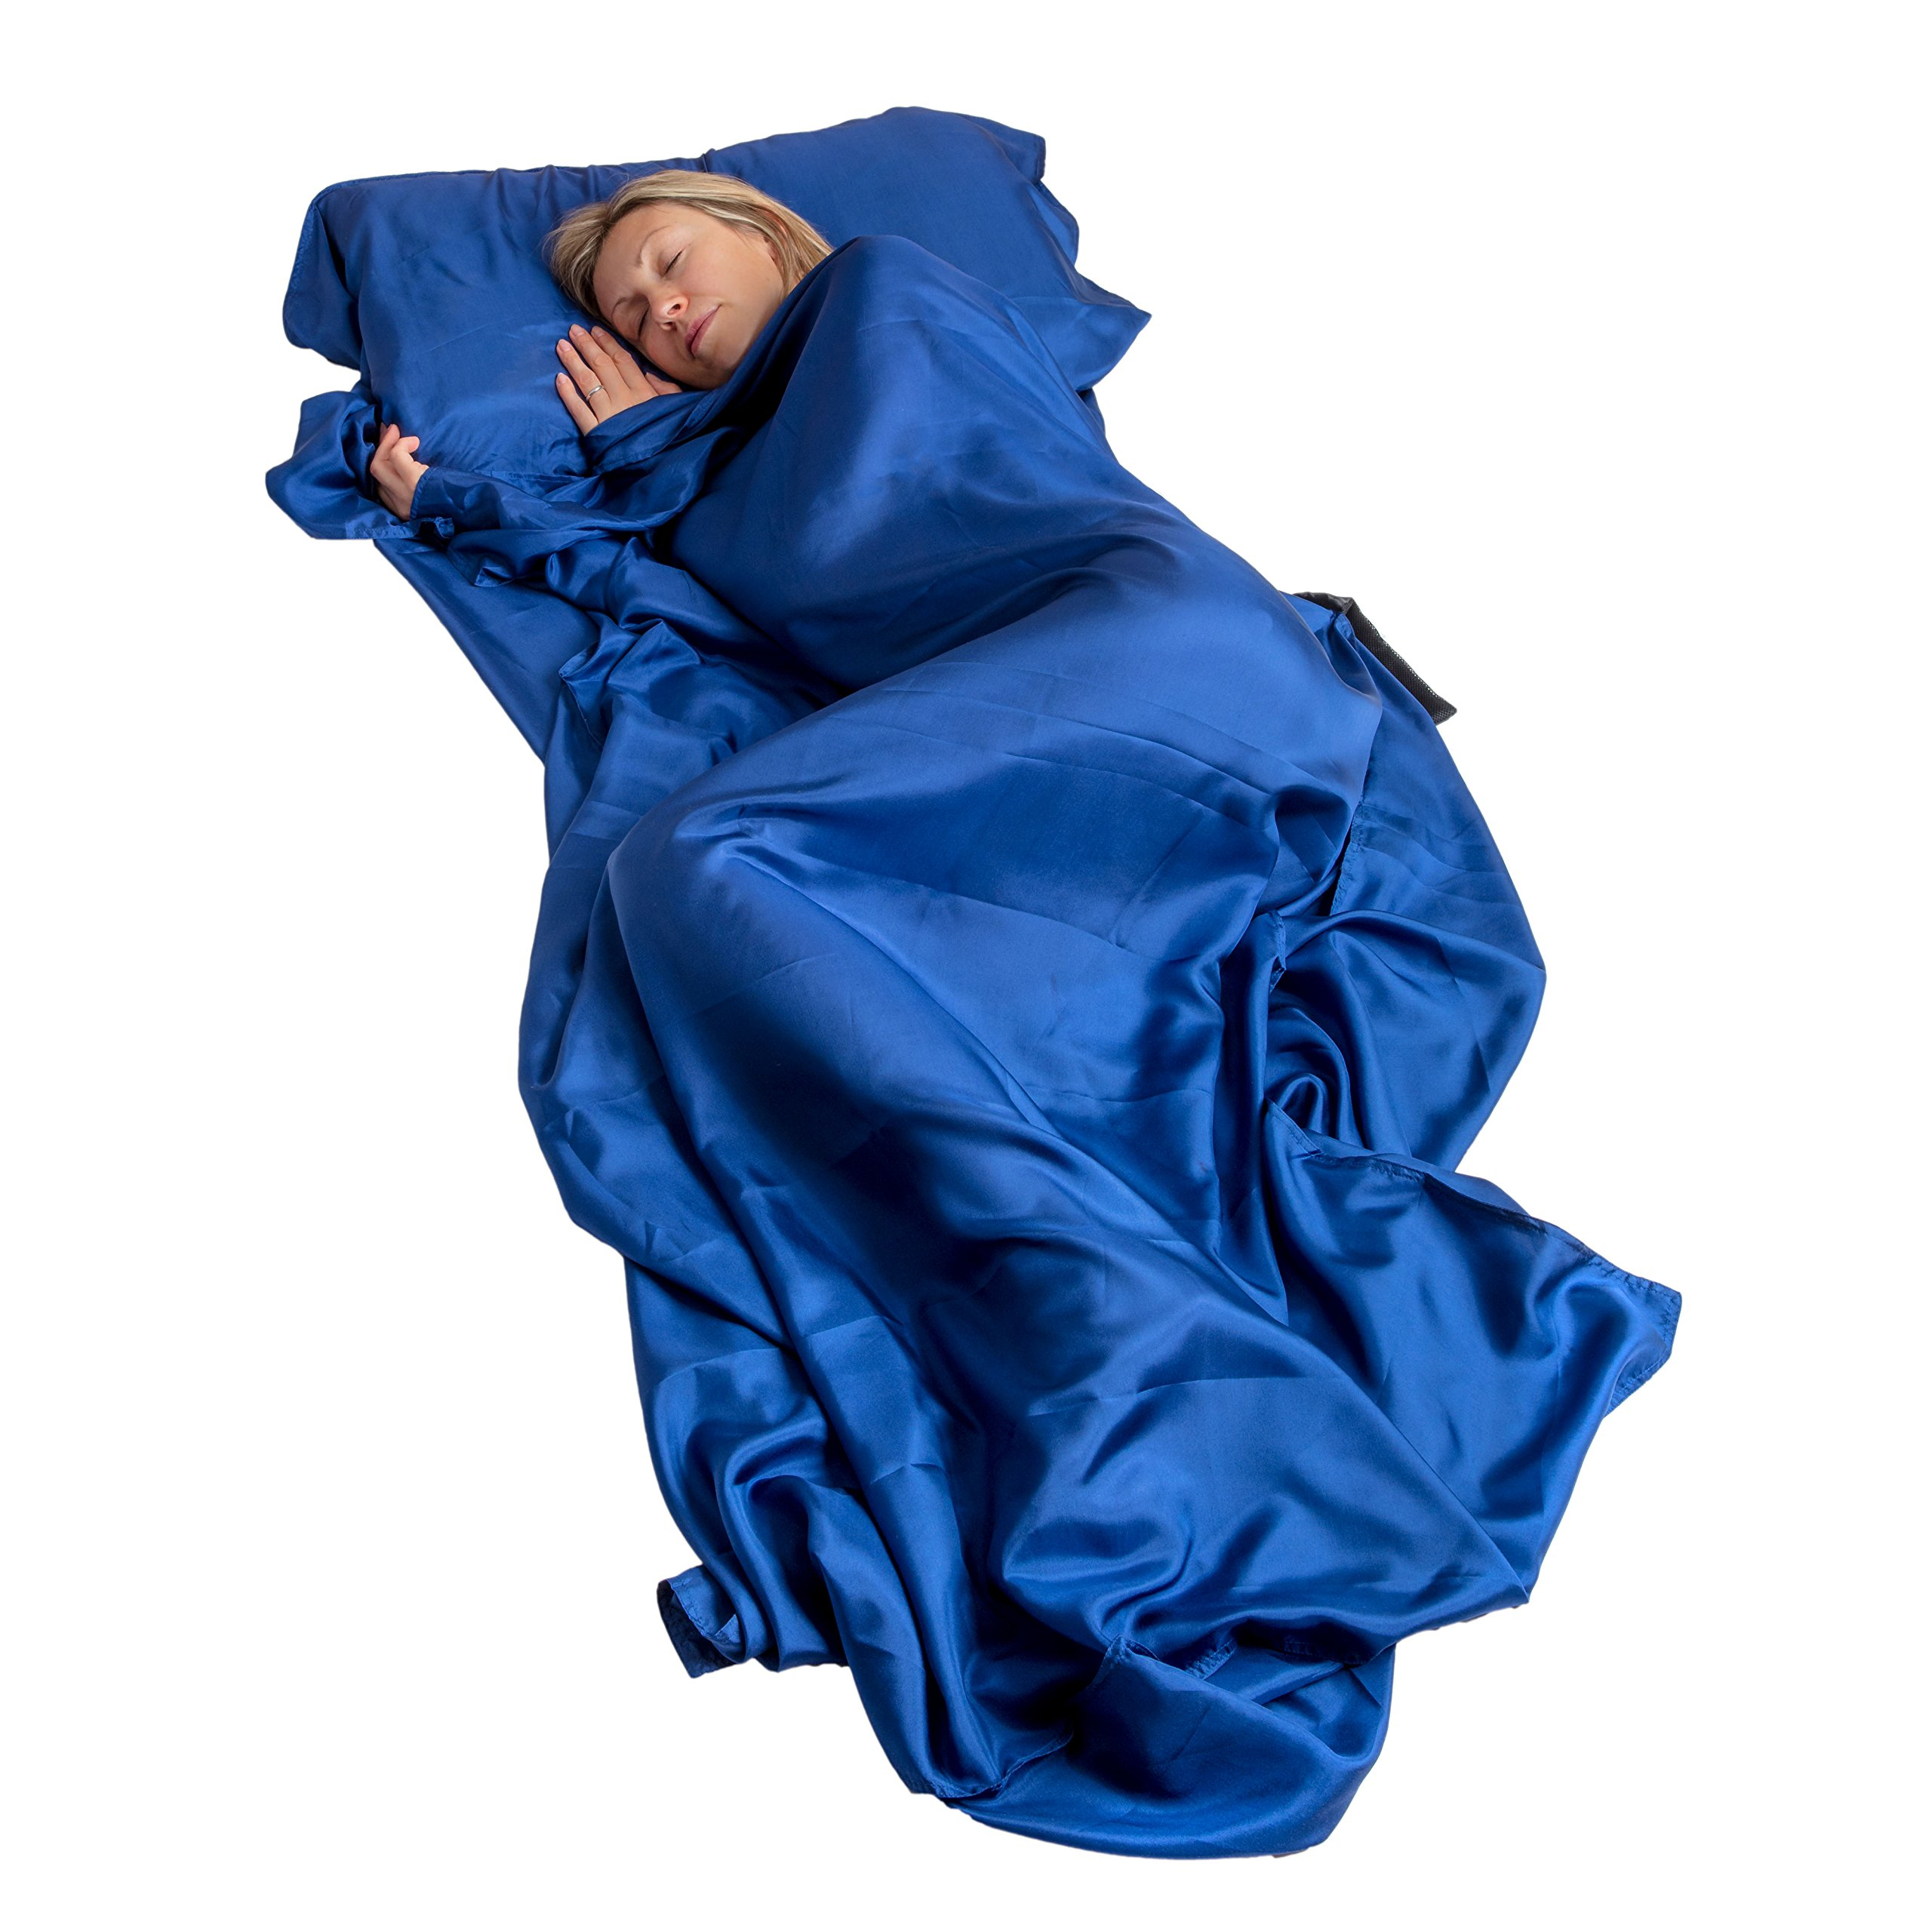 Exploren Extra Wide and Long 100% Pure Mulberry Silk Sheet Sleep More Comfortably with This Lightweight Breathable Single Sleeping Bag Liner Travel Sack Camping Sheet with in Built Pillow case by Exploren